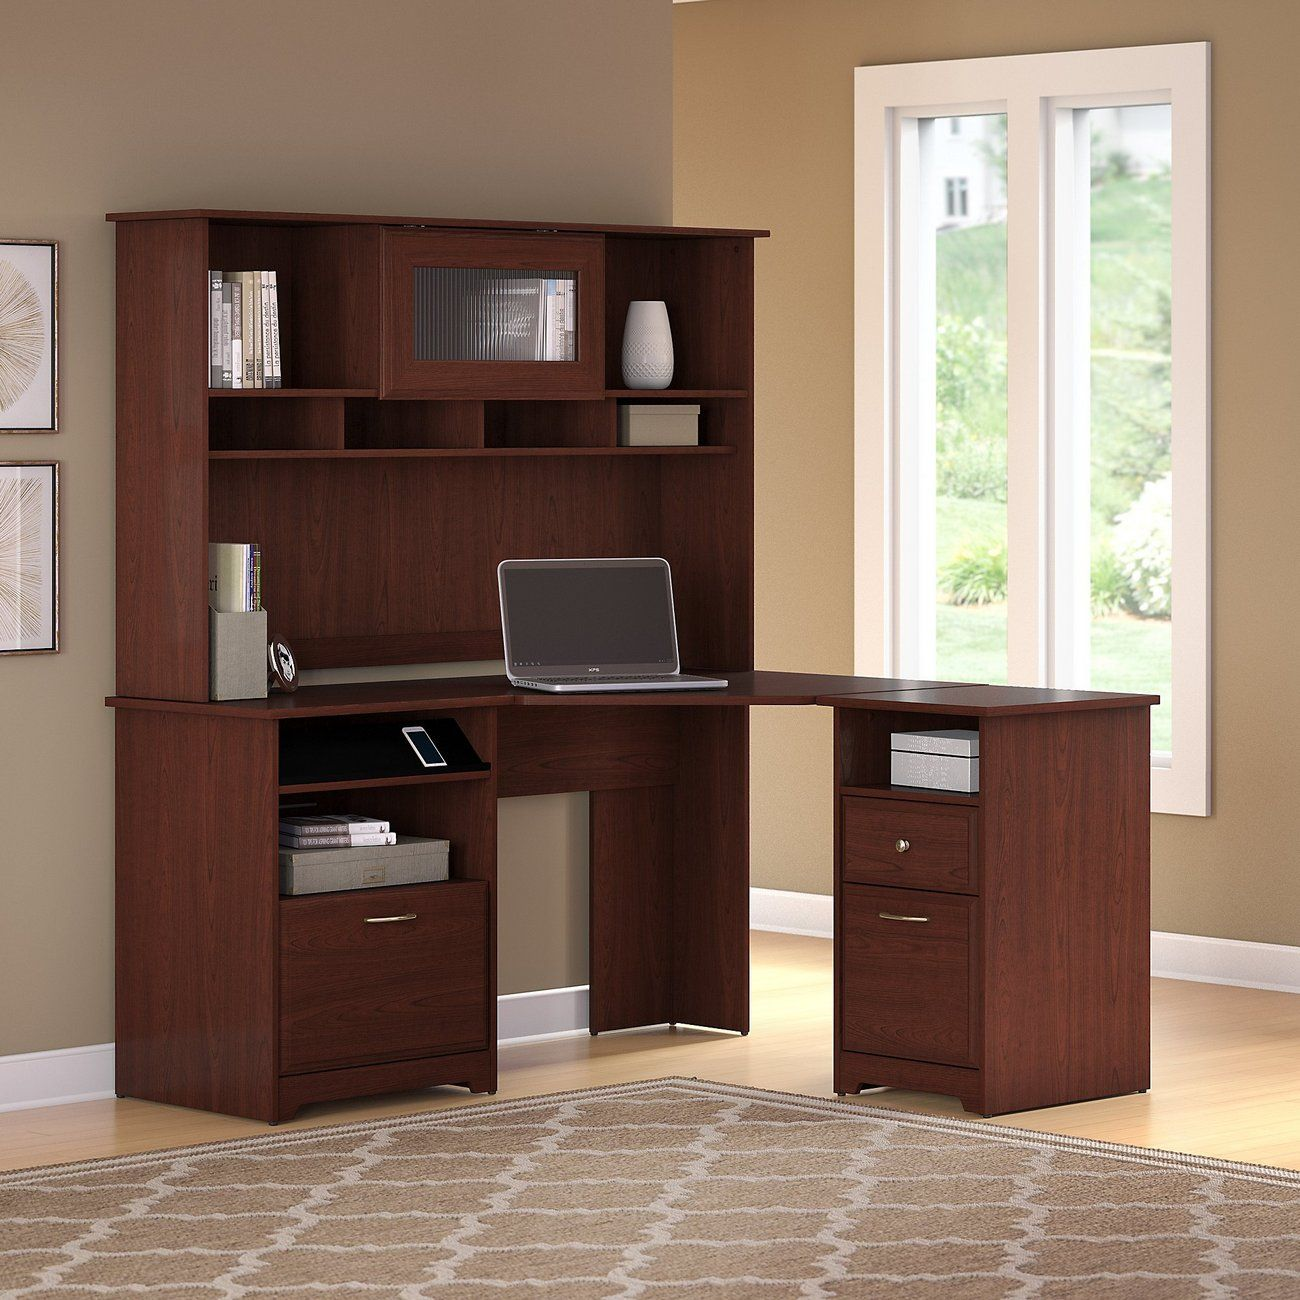 Bush Furniture Cabot Lateral File Cabinet In Harvest Cherry Home Office Cabinets